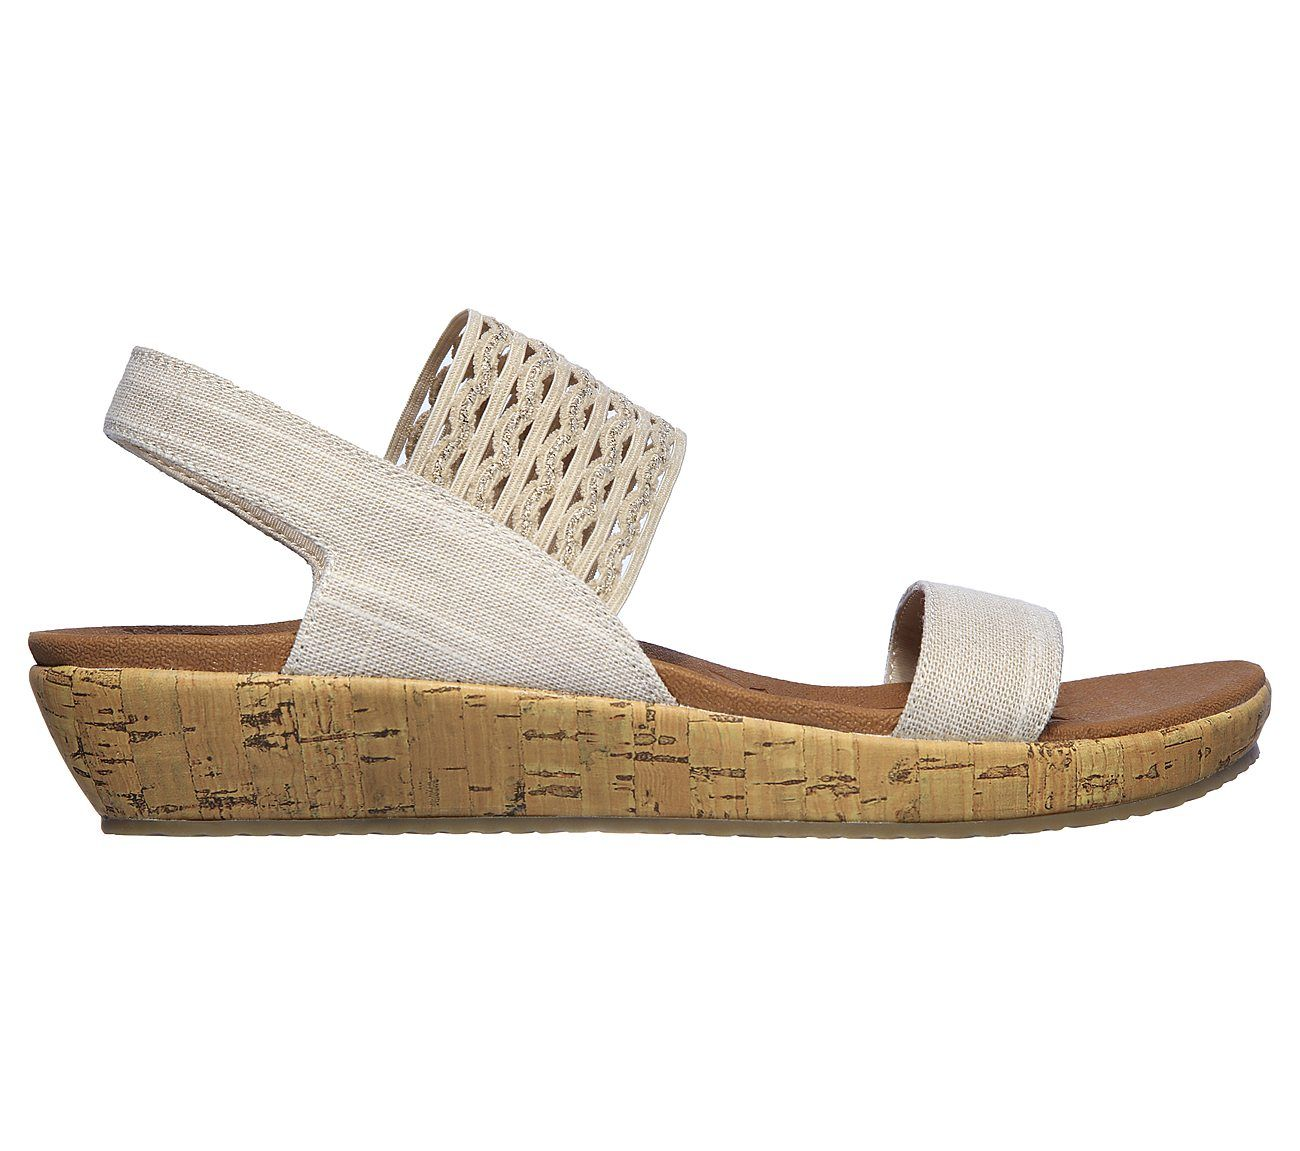 Shop The Brie Most Wanted In 2020 Skechers Store Comfortable Sandals Low Heel Wedges